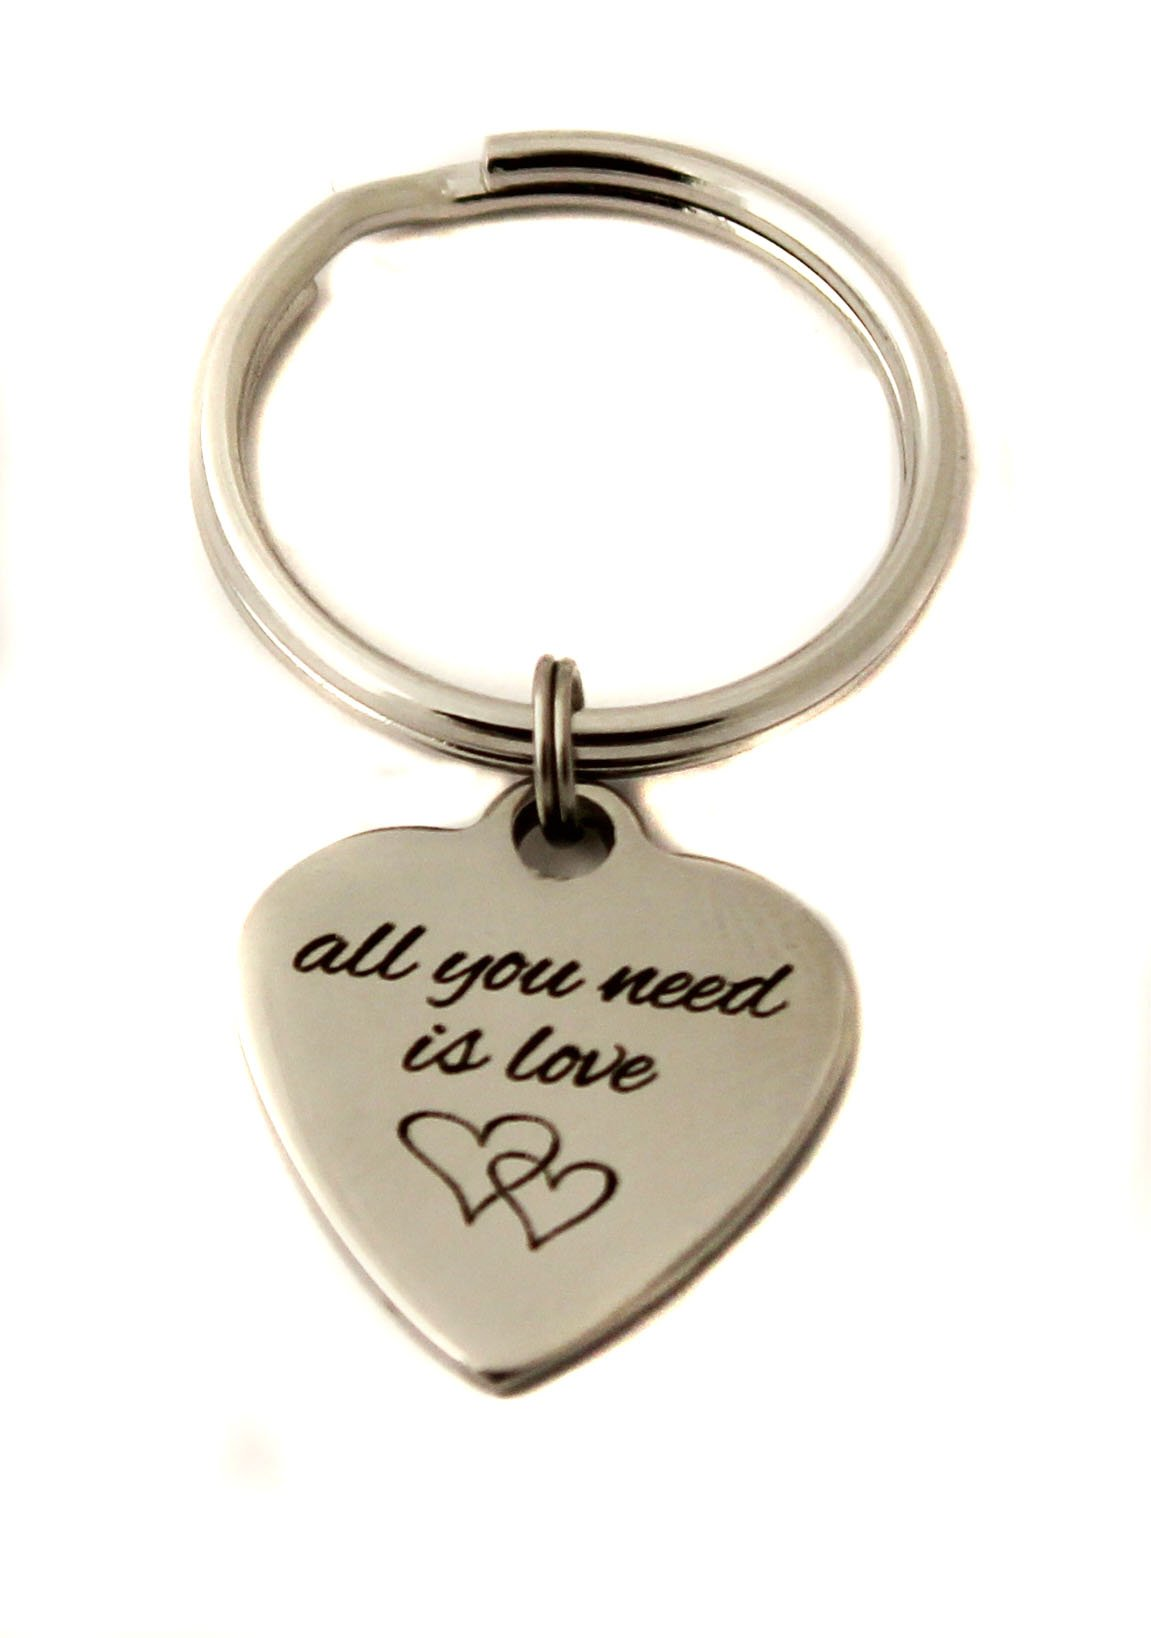 Stainless Steel All You Need Is Love Heart Charm Keychain Bag Charm Wedding Gift